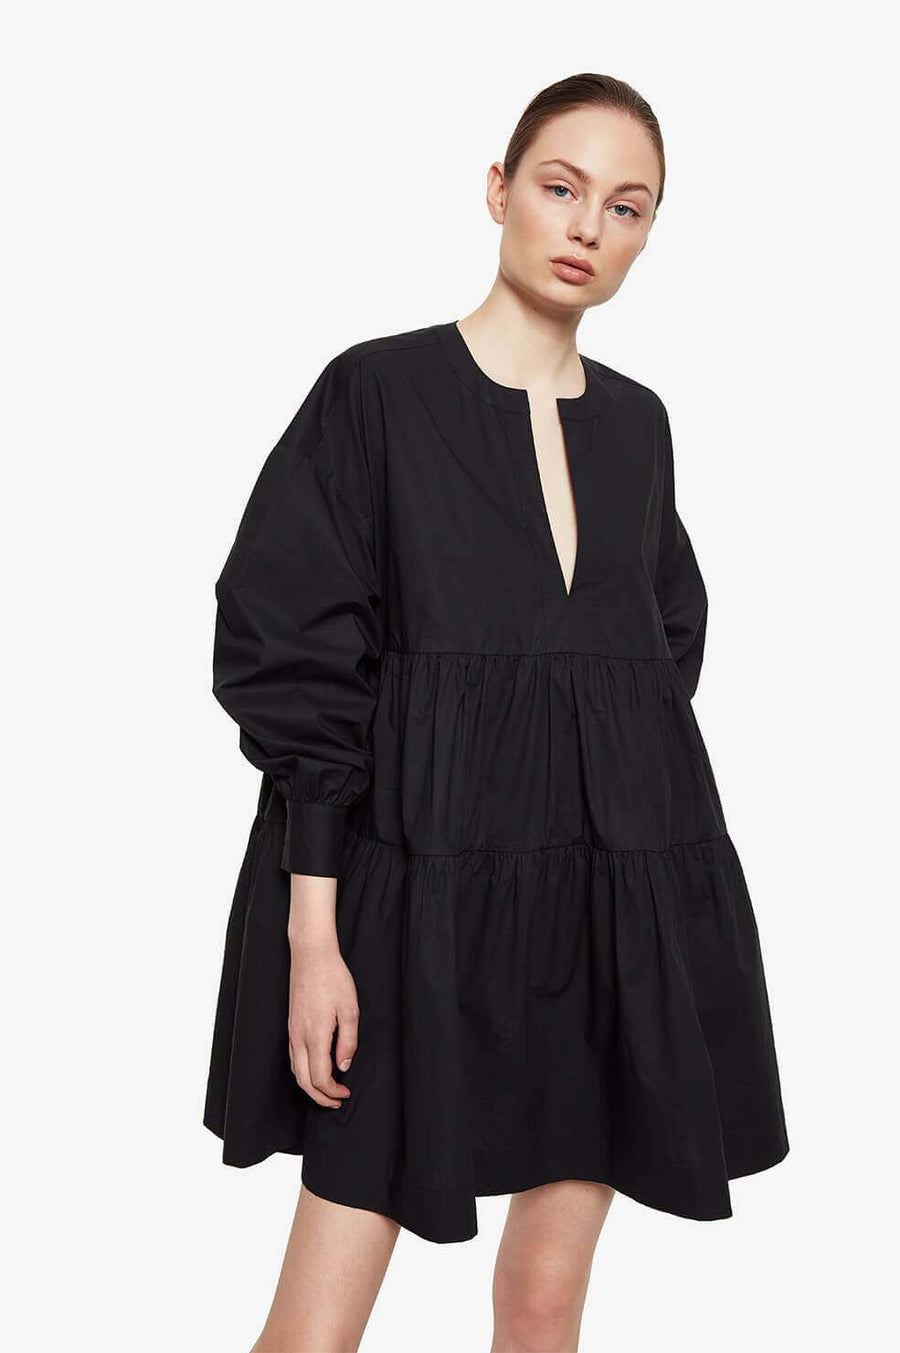 Anine Bing Addison Dress in Black from The New Trend